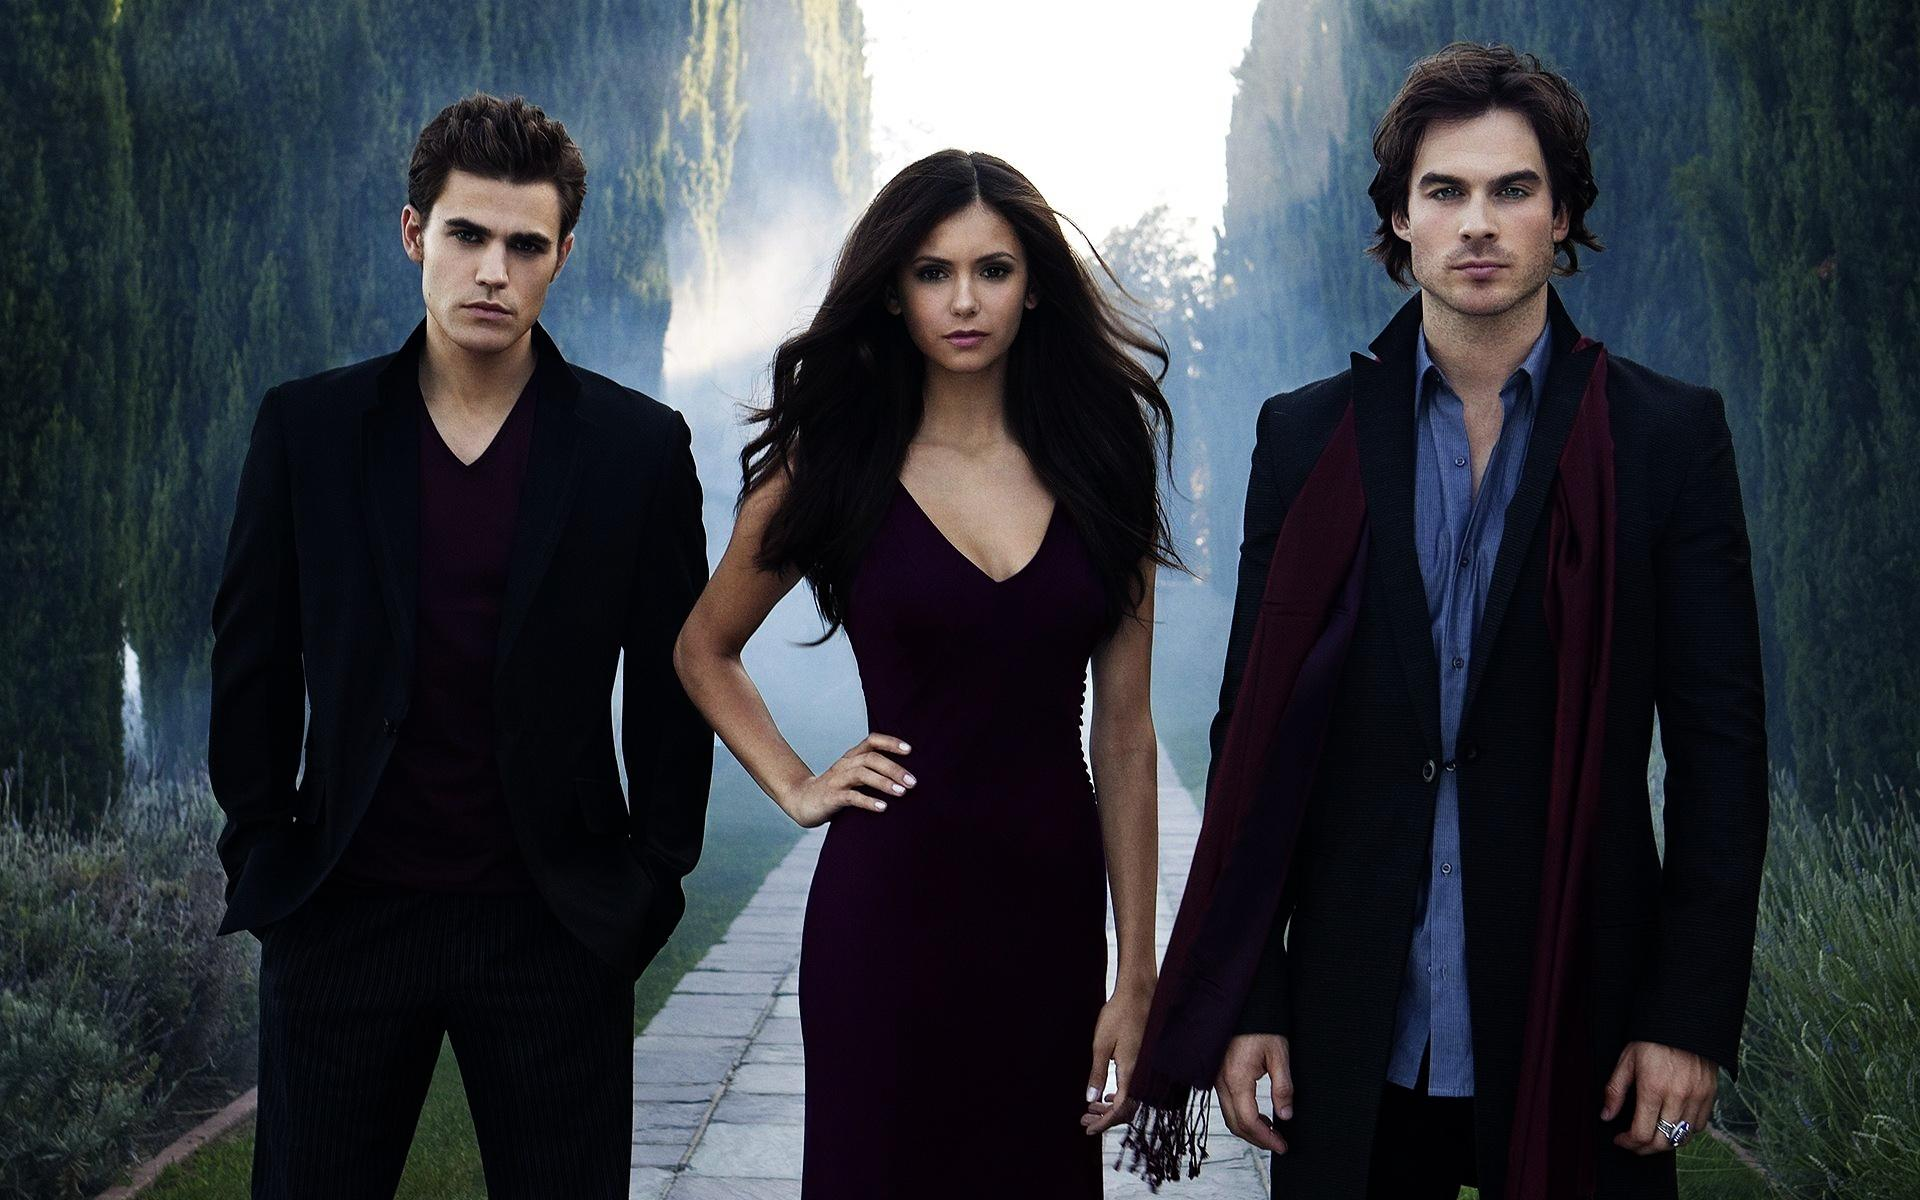 Paul Wesley Nina Dobrev Ian Somerhalder - Wallpaper, High ...